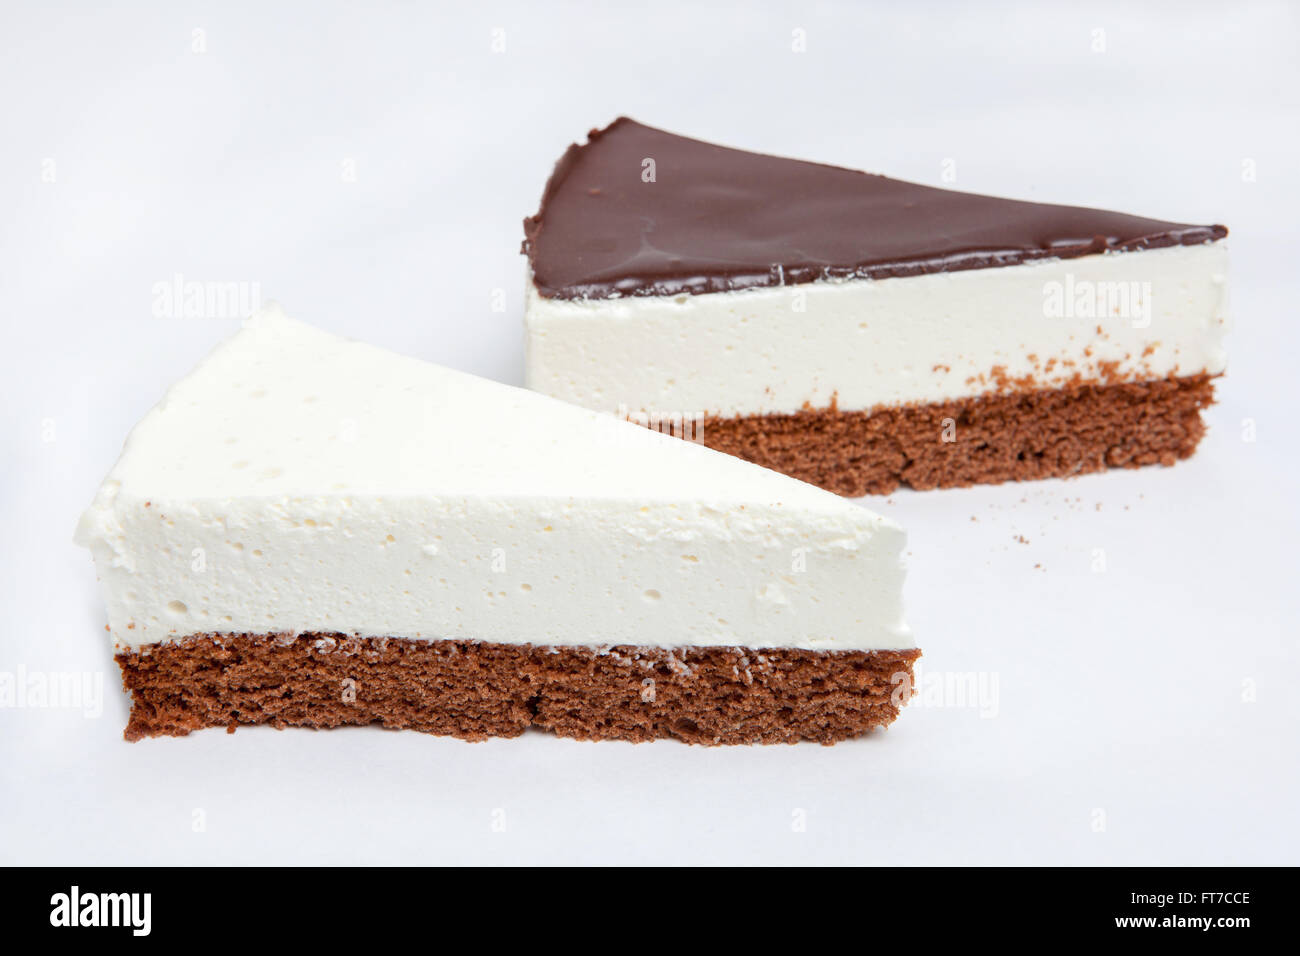 cheesecake, various kinds of ice cream and desserts for the restaurant menu and cafes, a variety of cakes, delicious - Stock Image